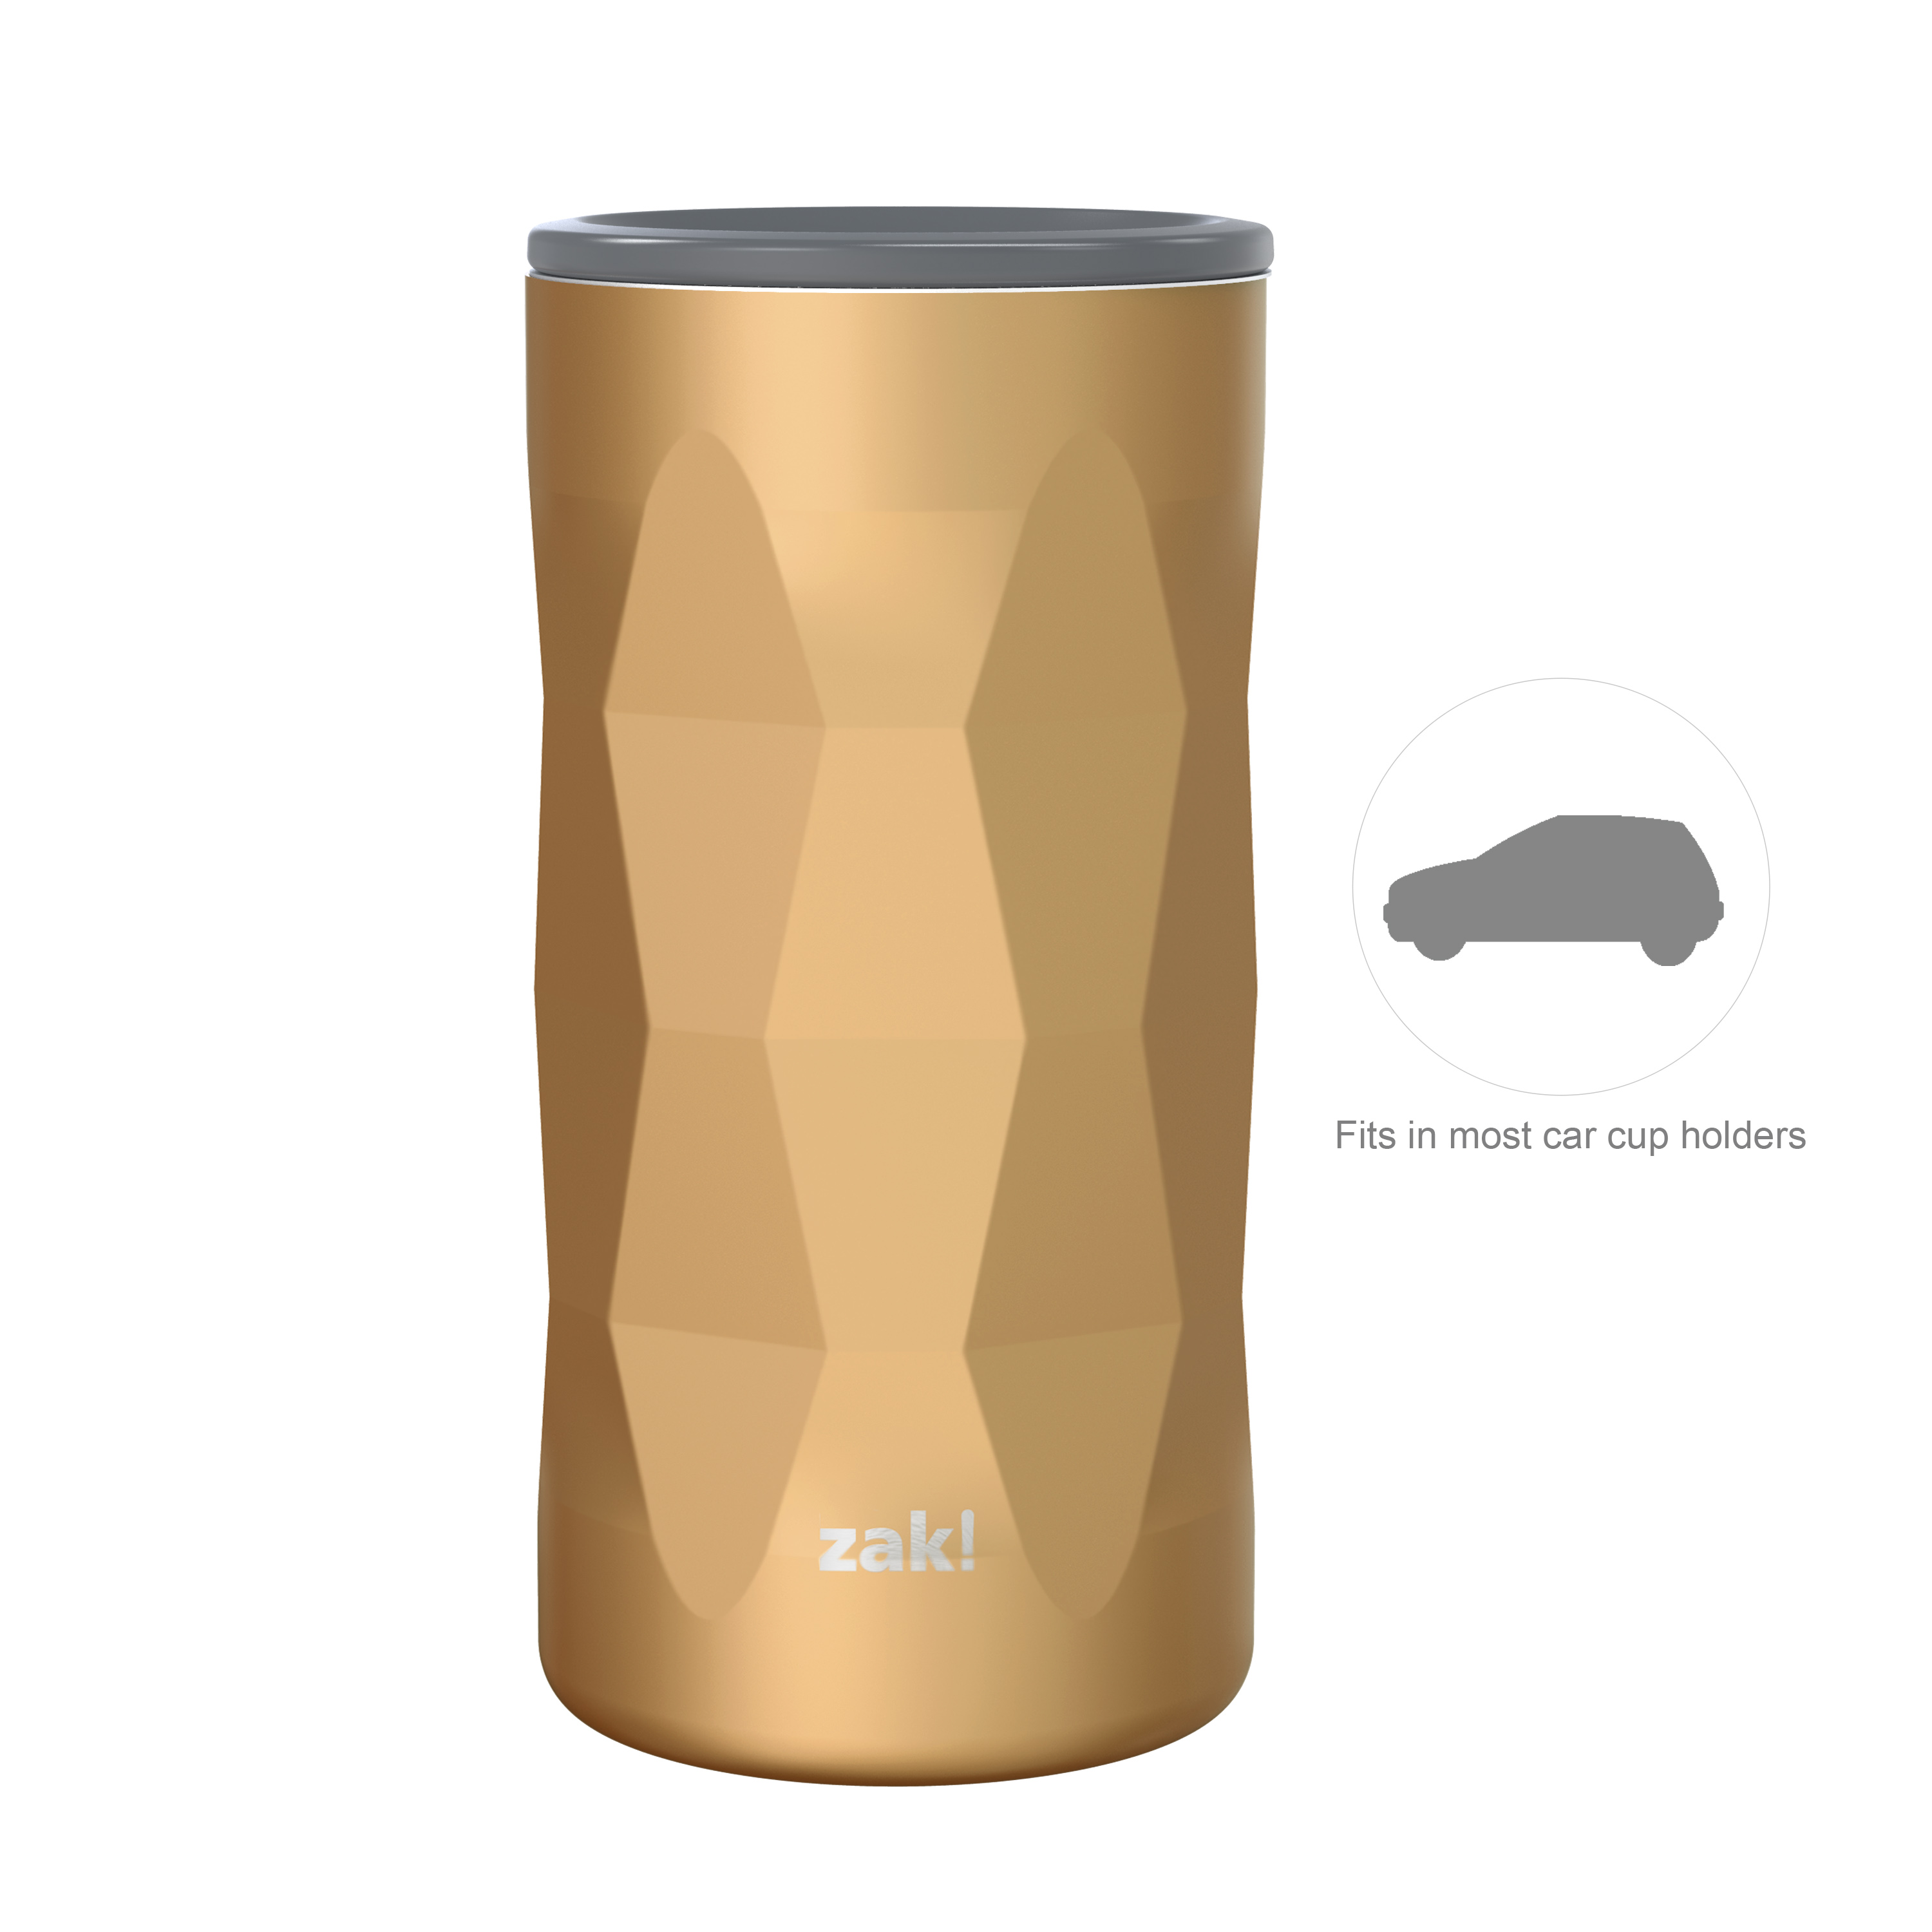 Fractal 12 ounce Vacuum Insulated Stainless Steel Tumbler, Copper slideshow image 6